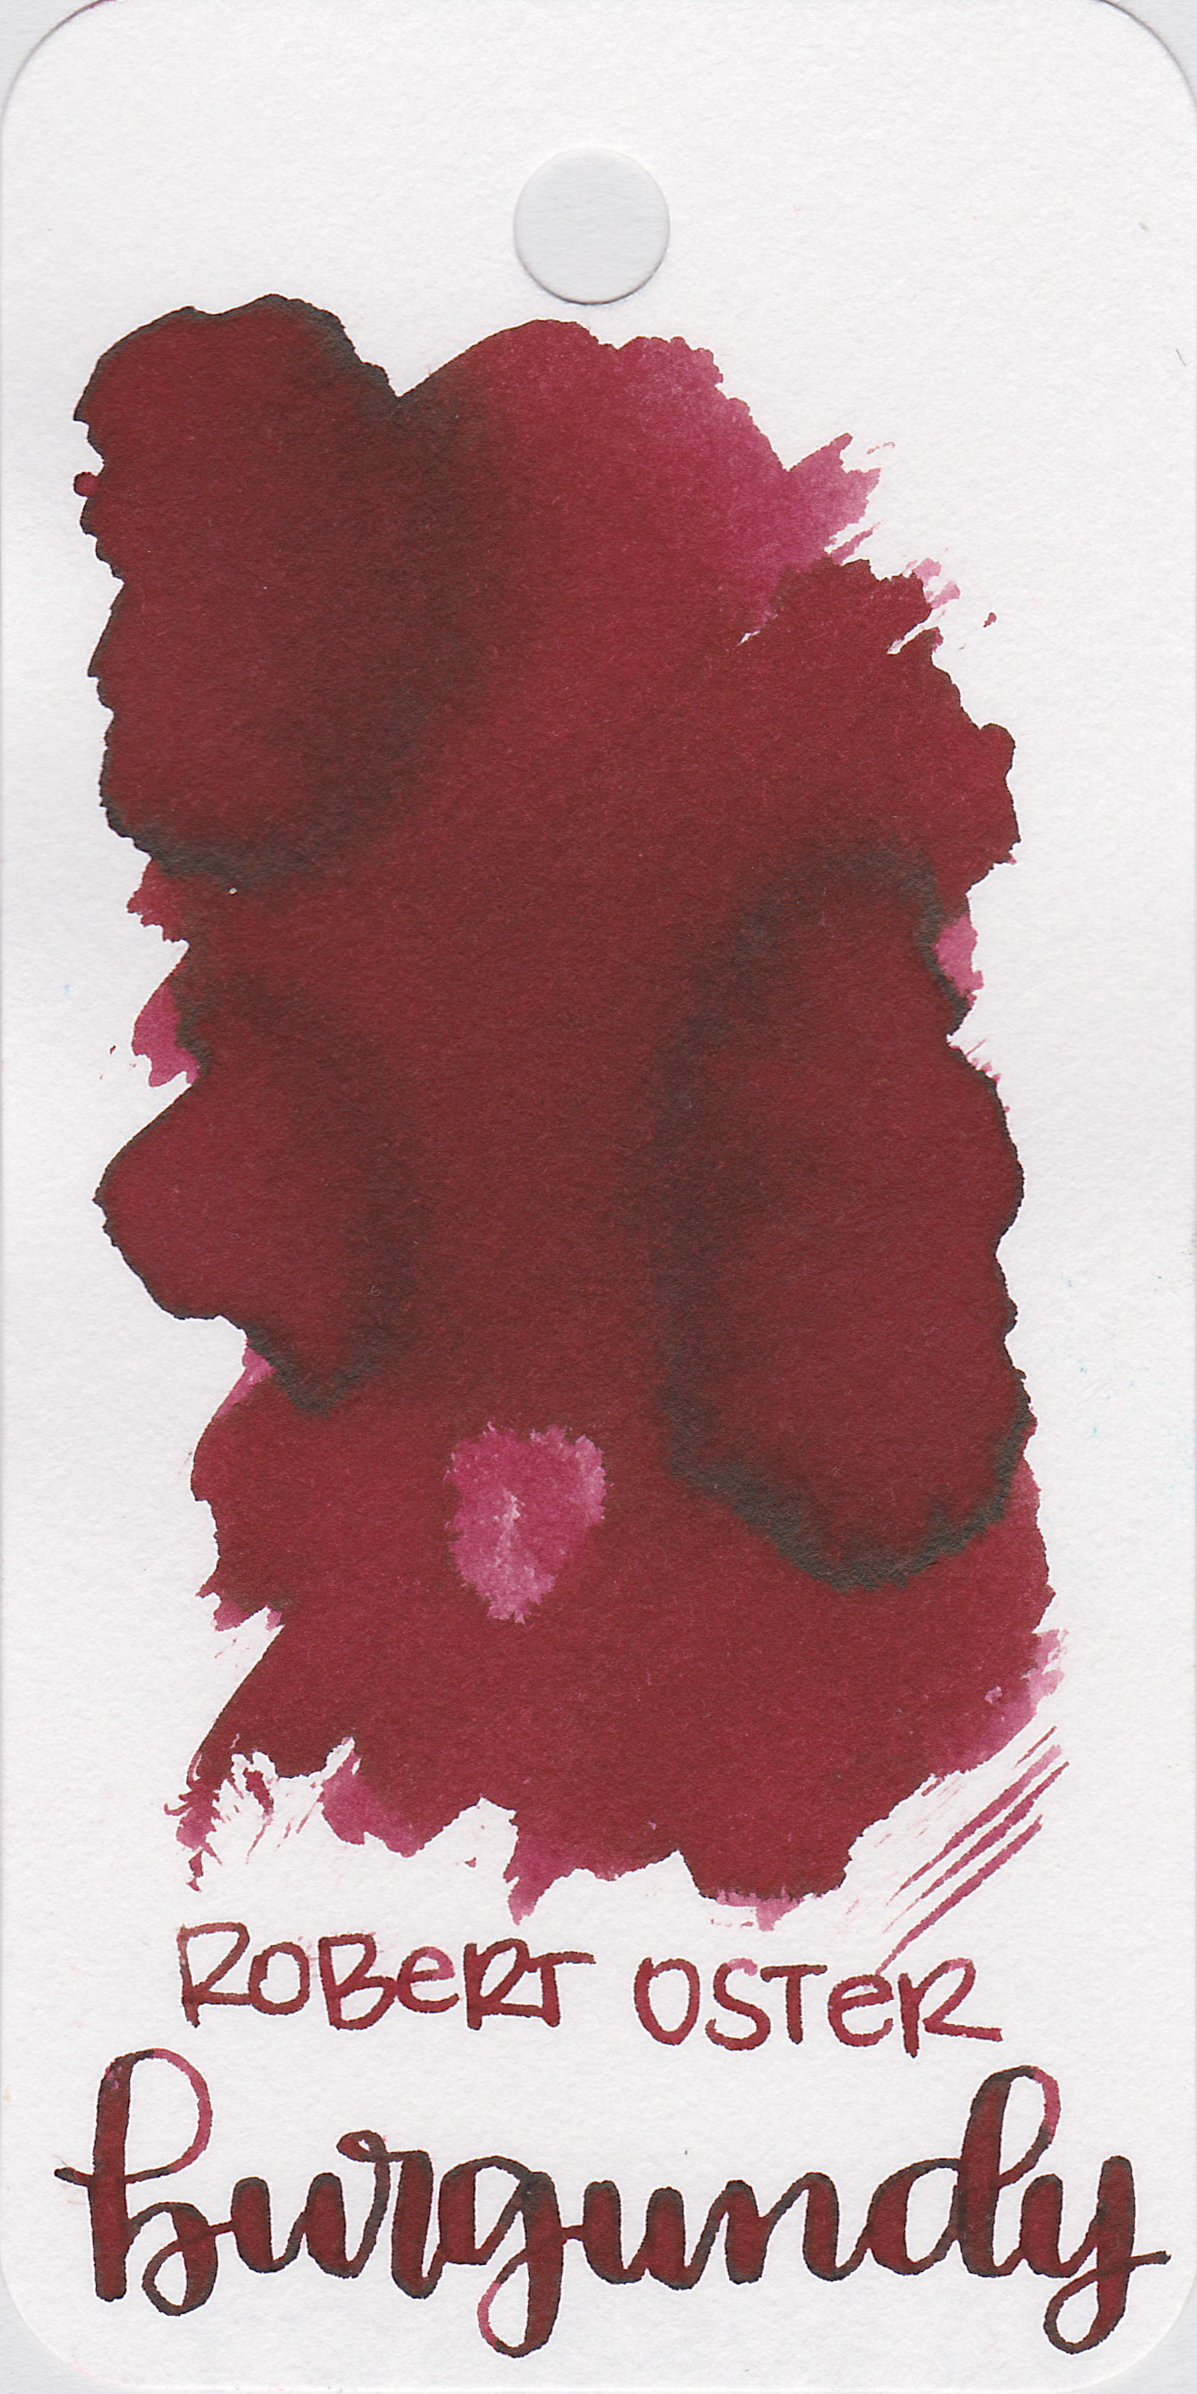 The color: - Burgundy is a medium red, almost a maroon.